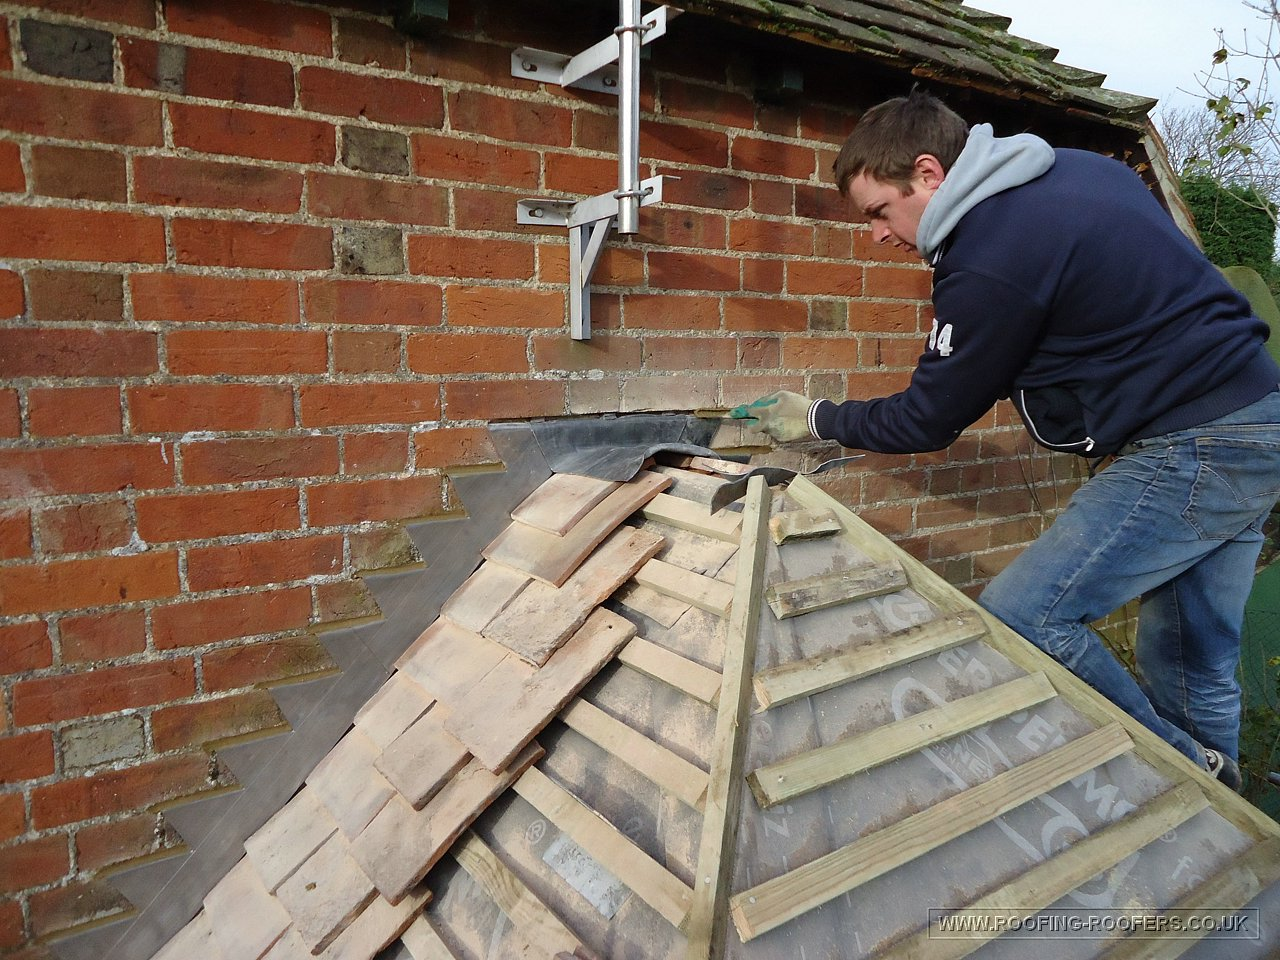 Roof Tiling Roofing And Building Repairs Specialists